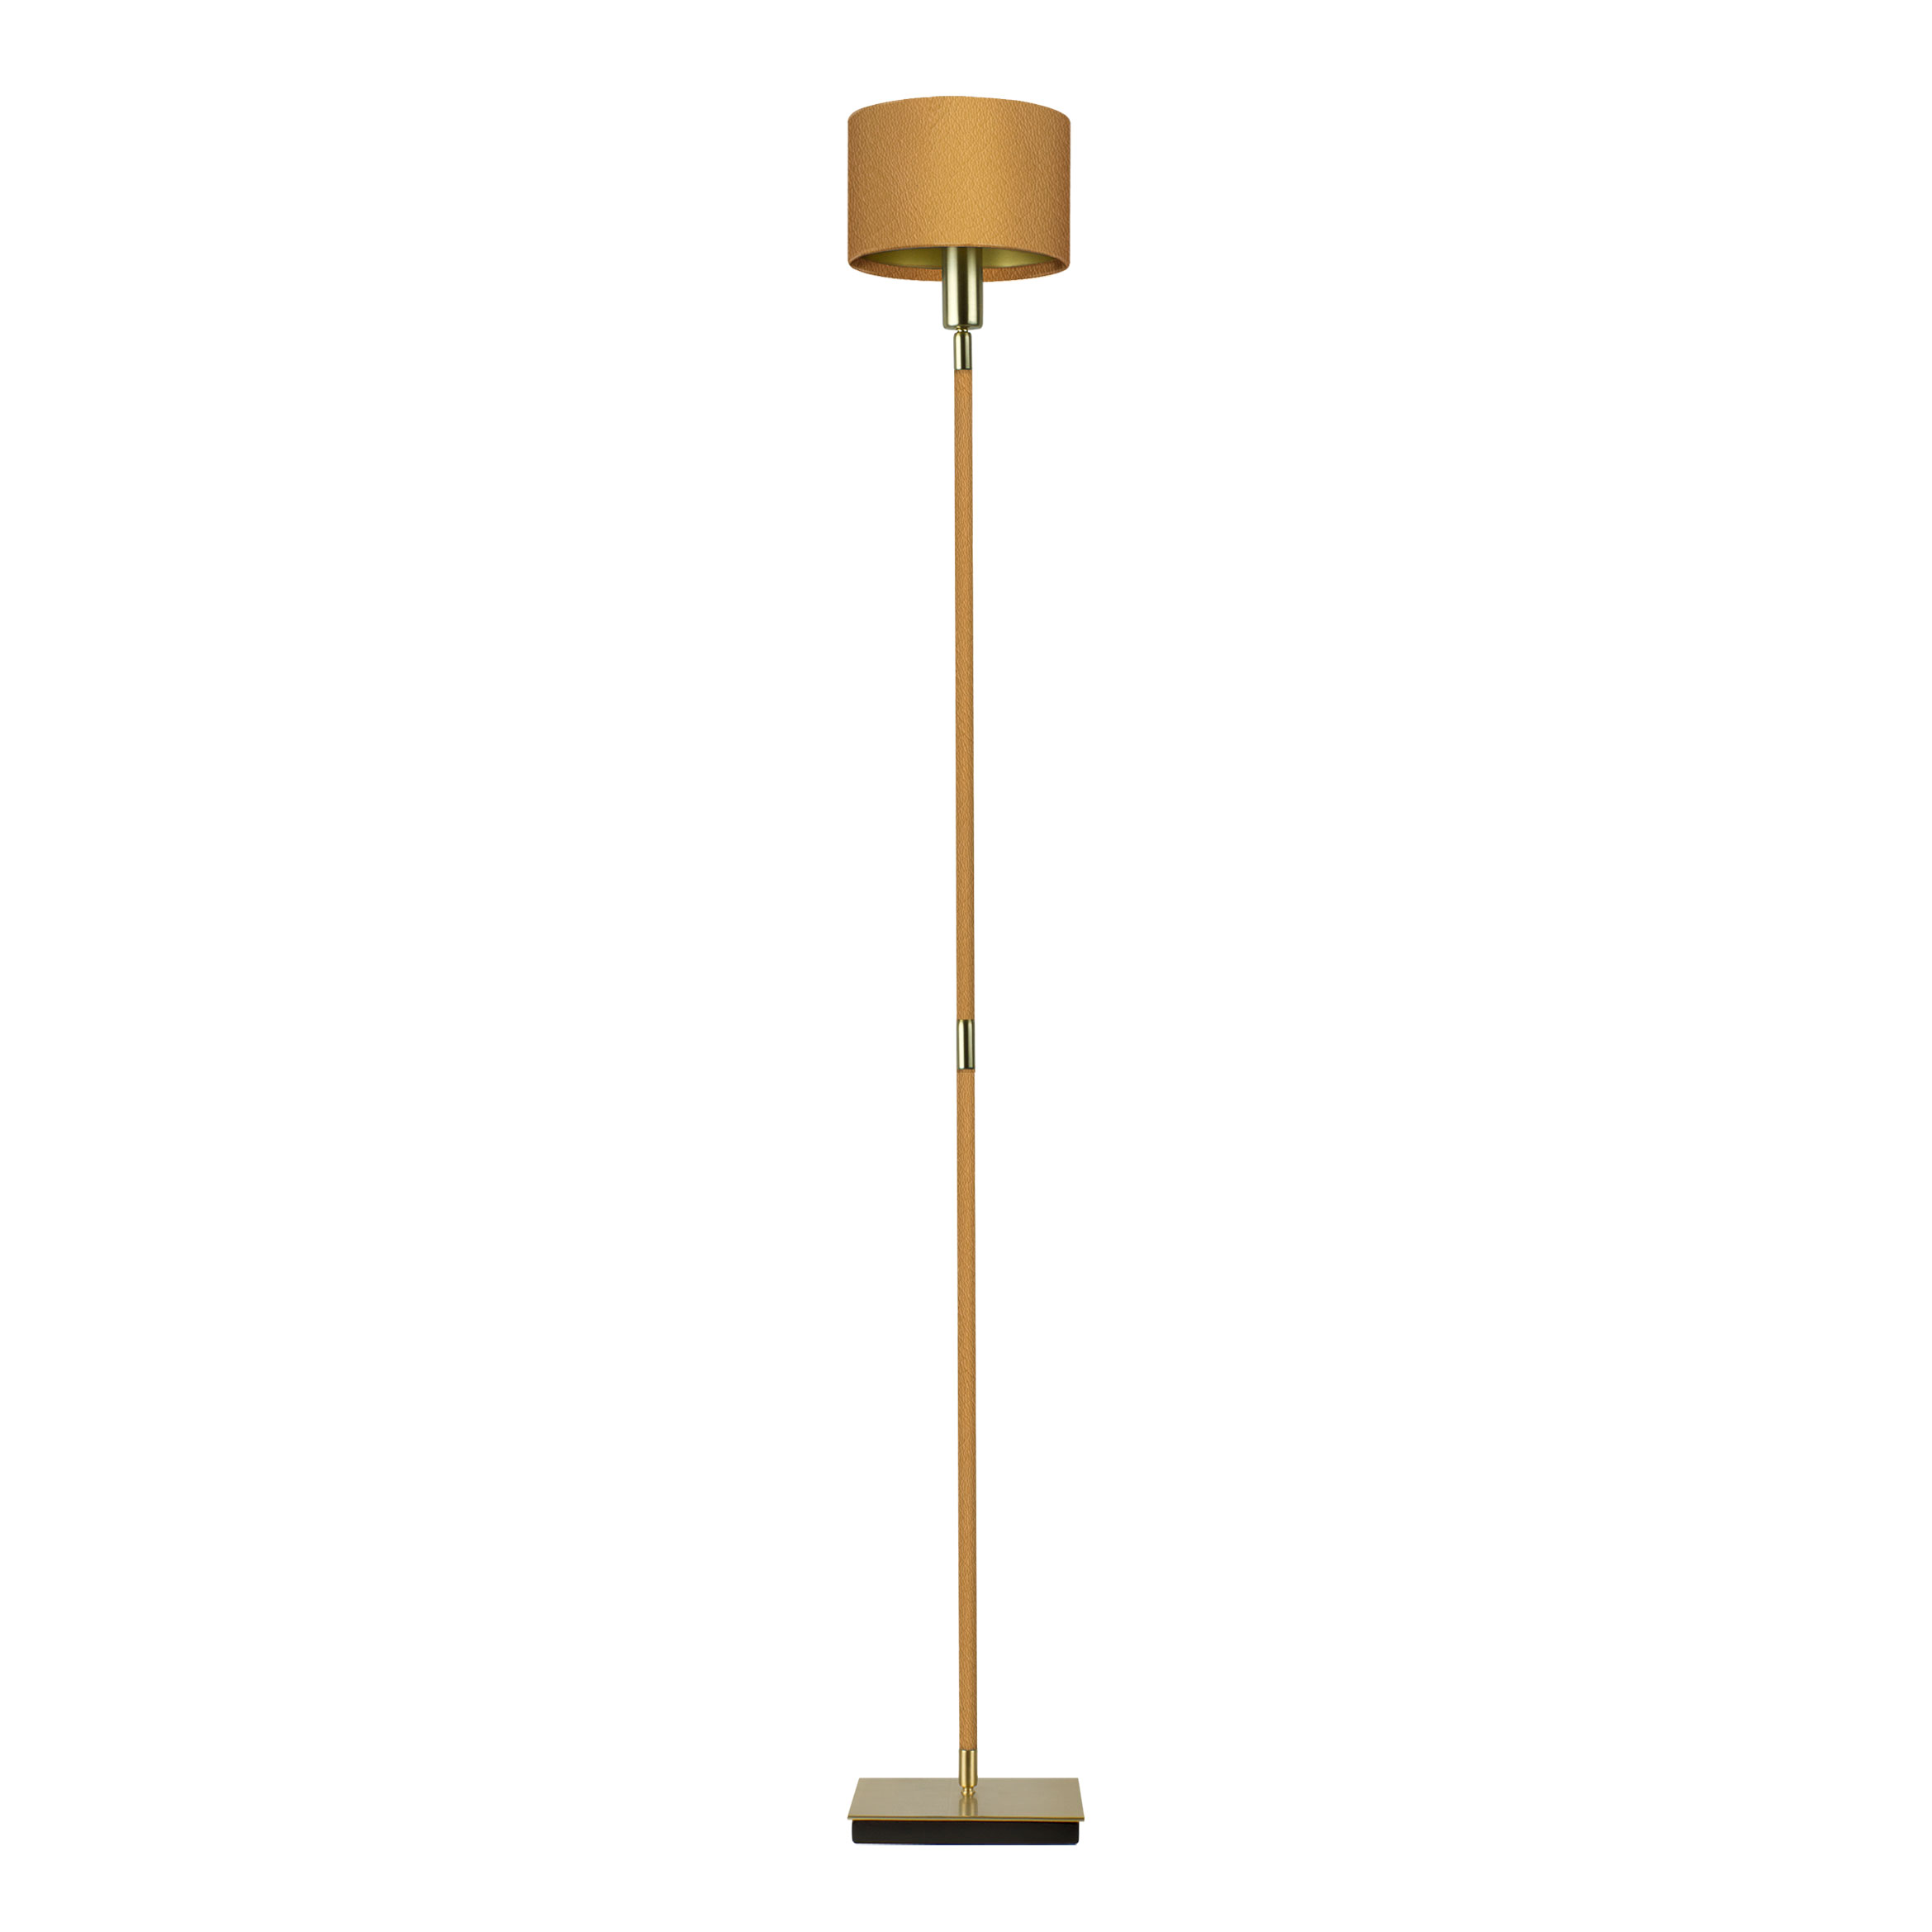 Linea villaverde london villaverde london linea metal leather floor lamp square aloadofball Image collections